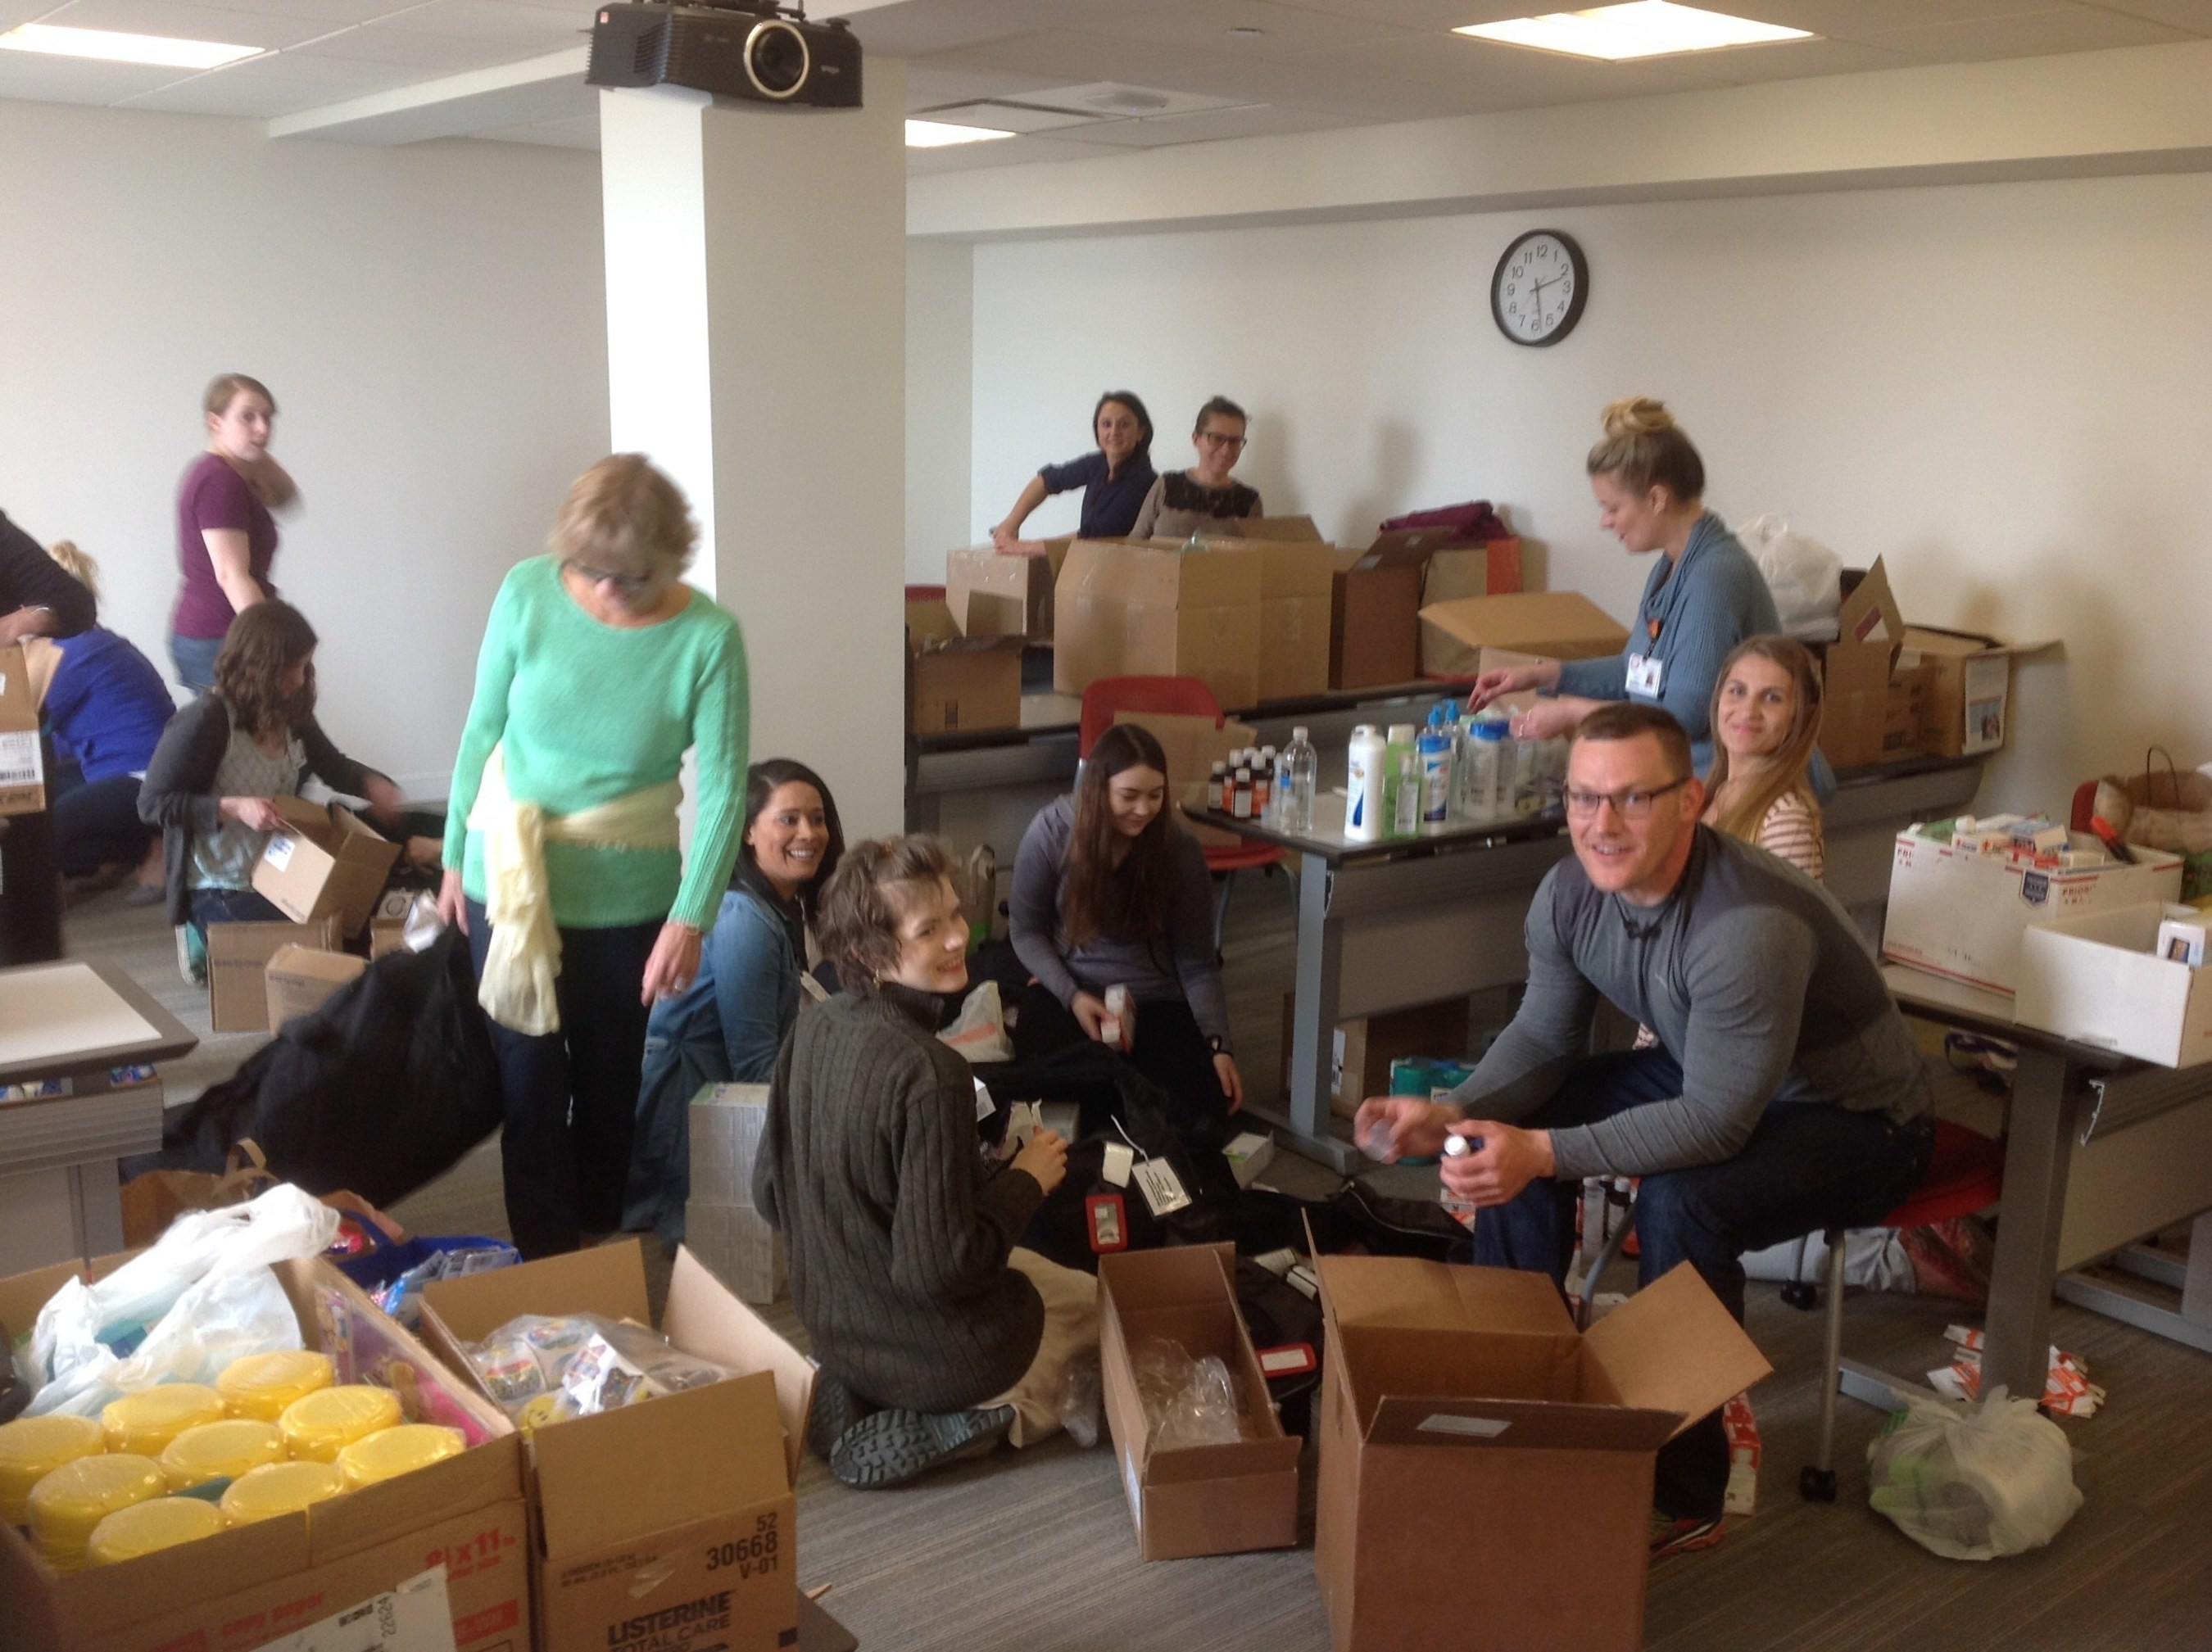 Resurrection University Nursing Students packing donations for Service Learning Trip to Honduras.